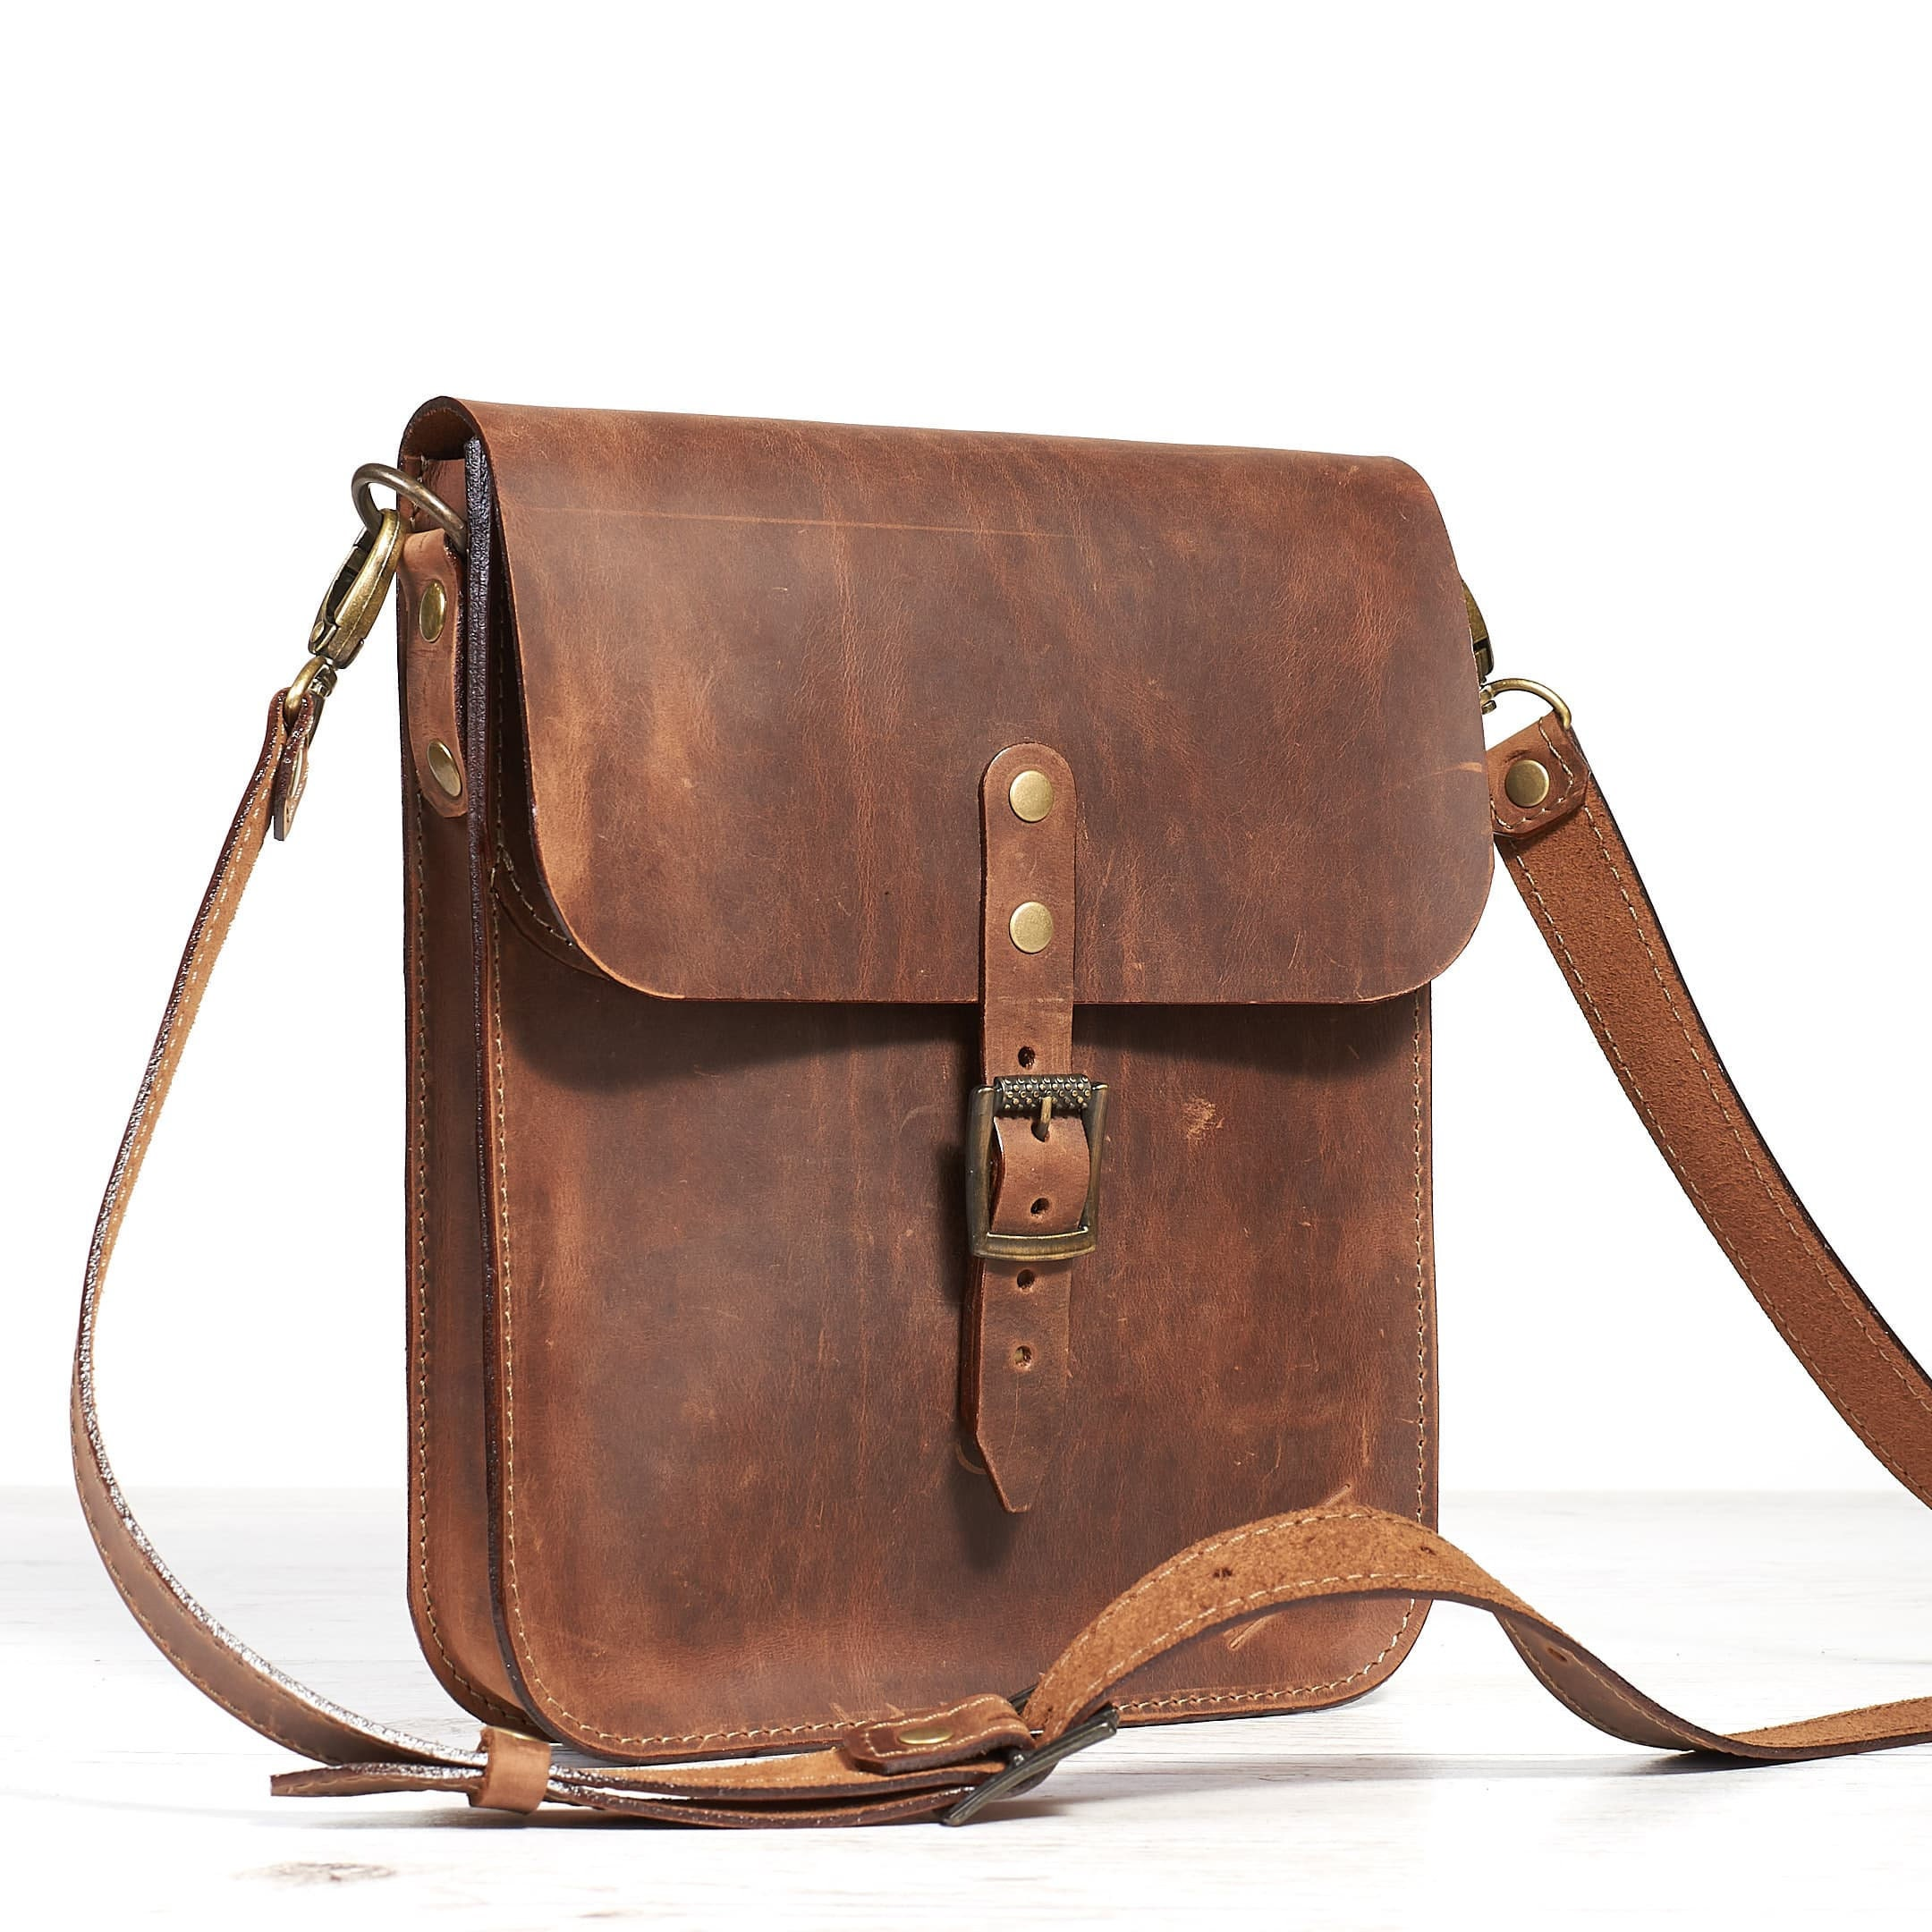 fb3297501a1 Mens leather shoulder bag. Small leather crossbody bag for